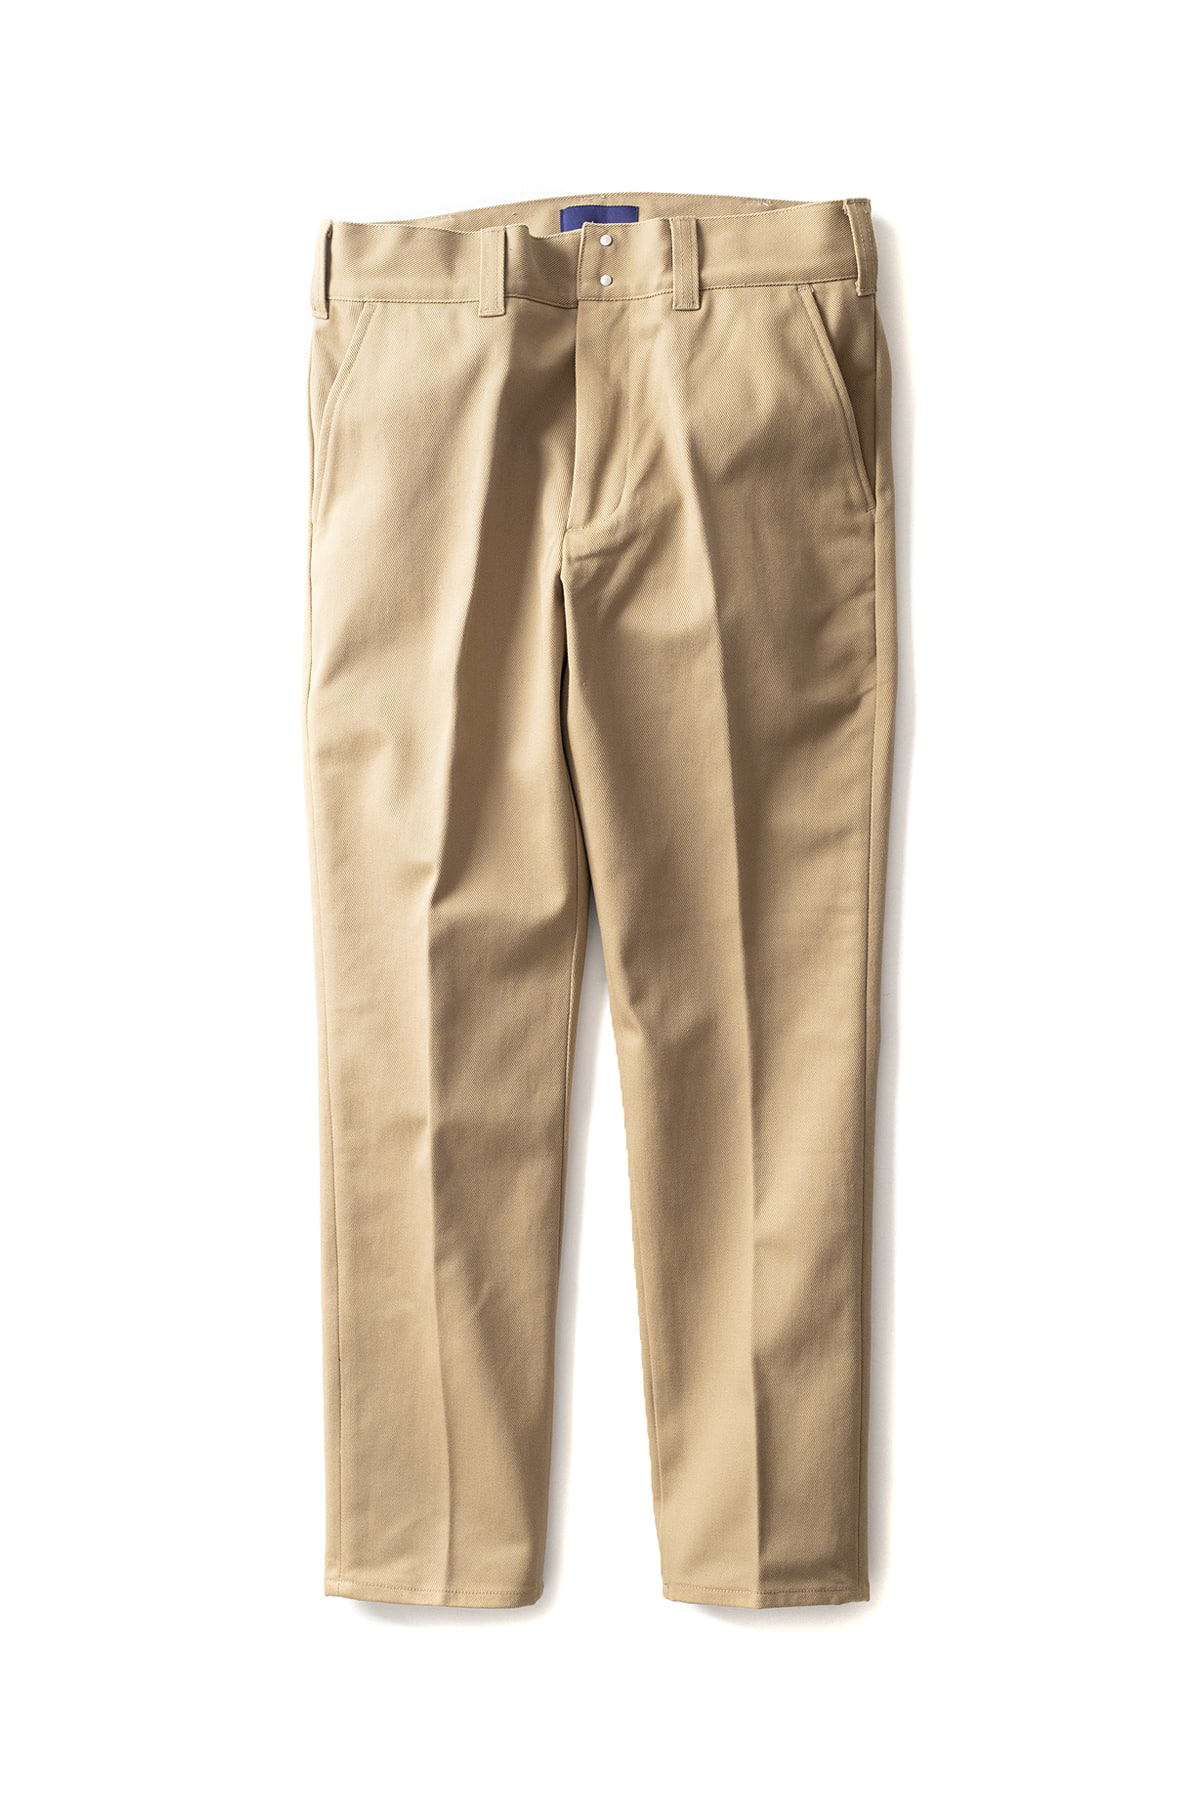 Ordinary fits #WHITE : Ringo Pants (Beige)